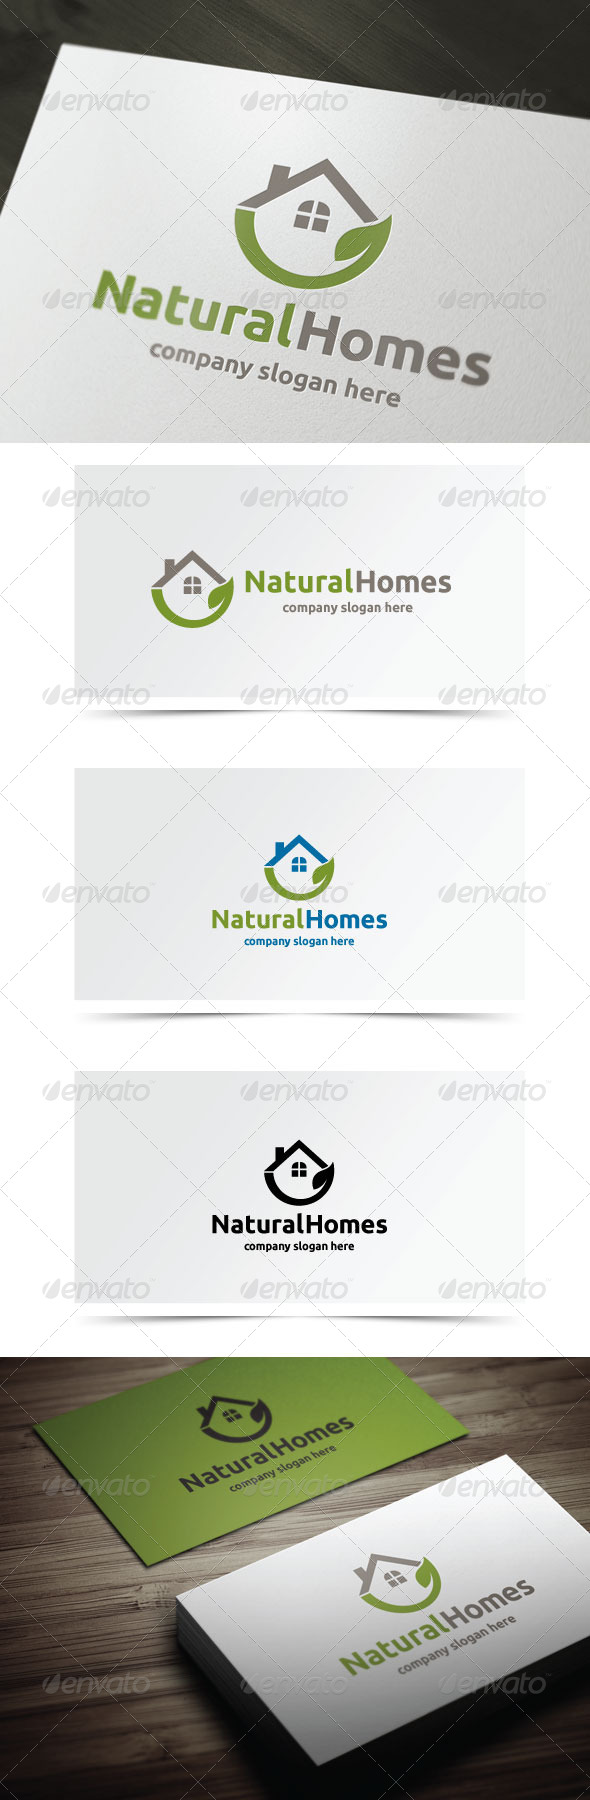 Natural Homes - Nature Logo Templates